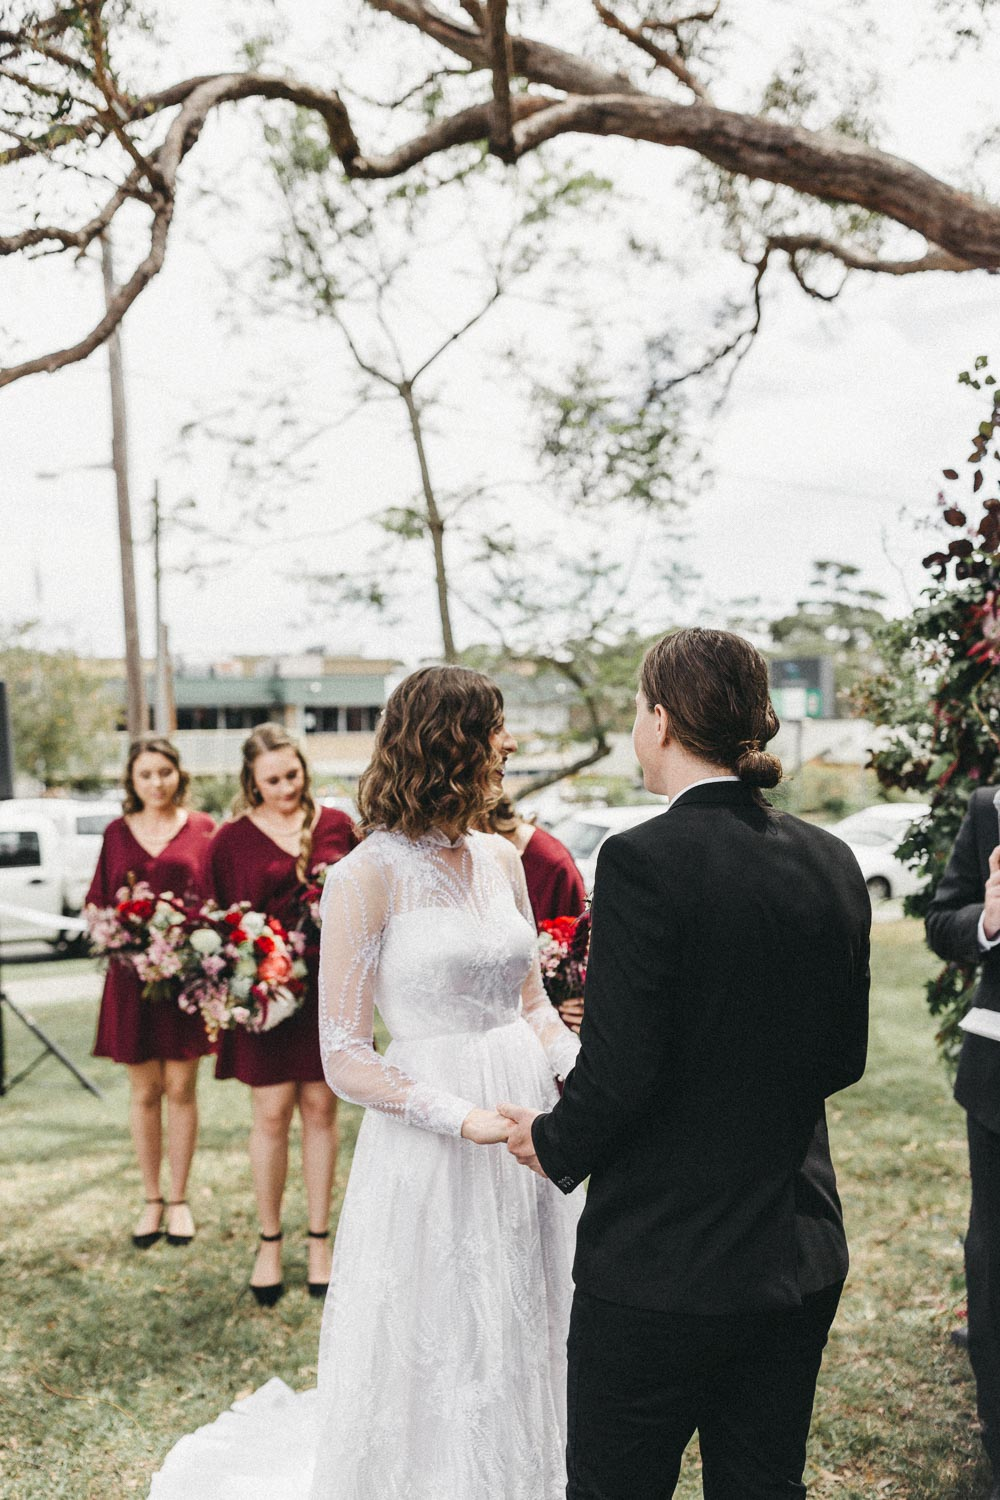 Sydney Wedding Photography | Wazza Studio 31.jpg